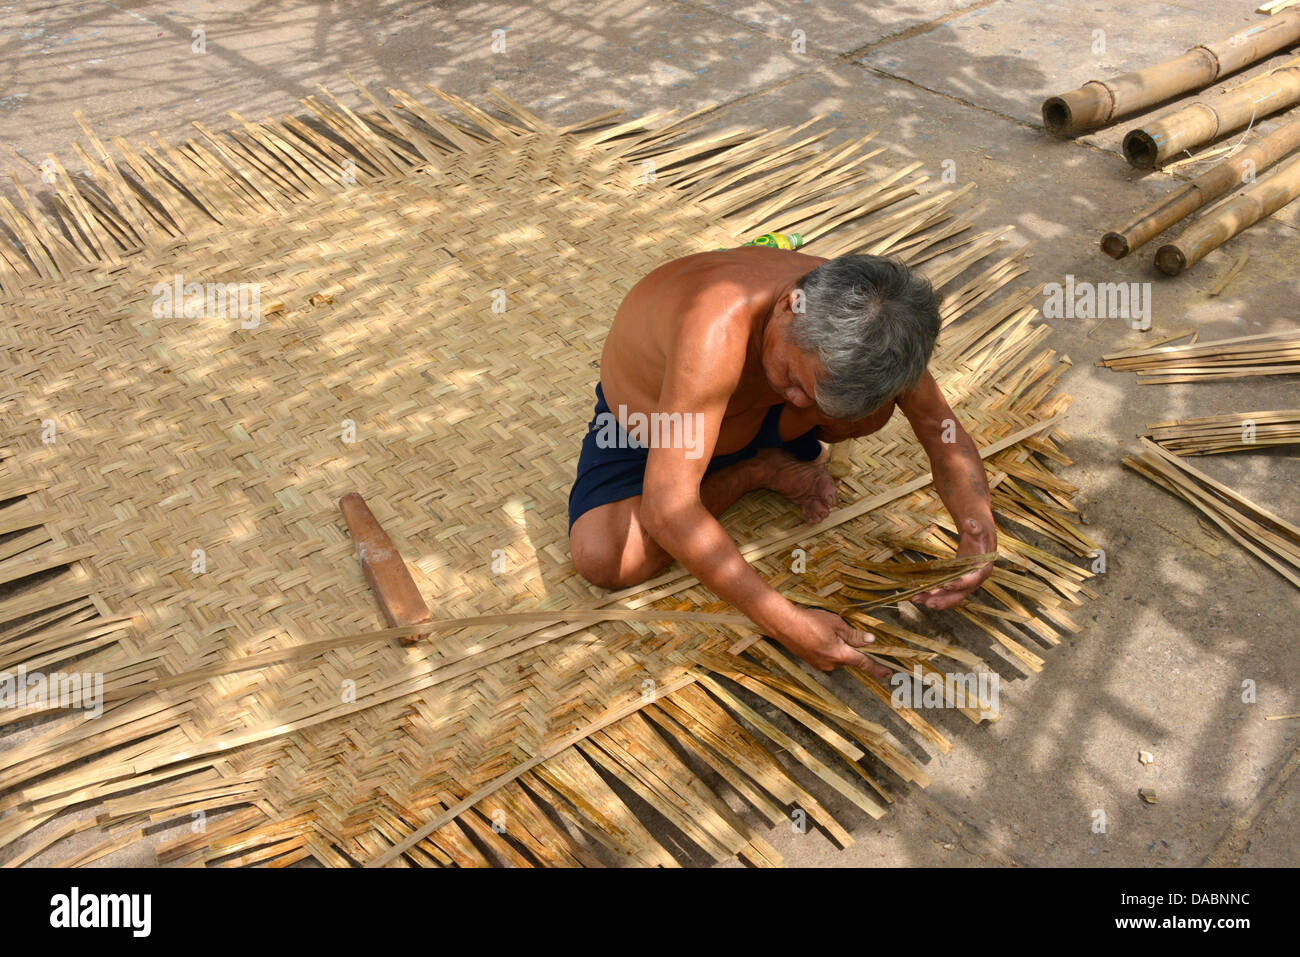 Weaving a basket tug boat, Phan Thiet, Vietnam, Indochina, Southeast Asia, Asia - Stock Image